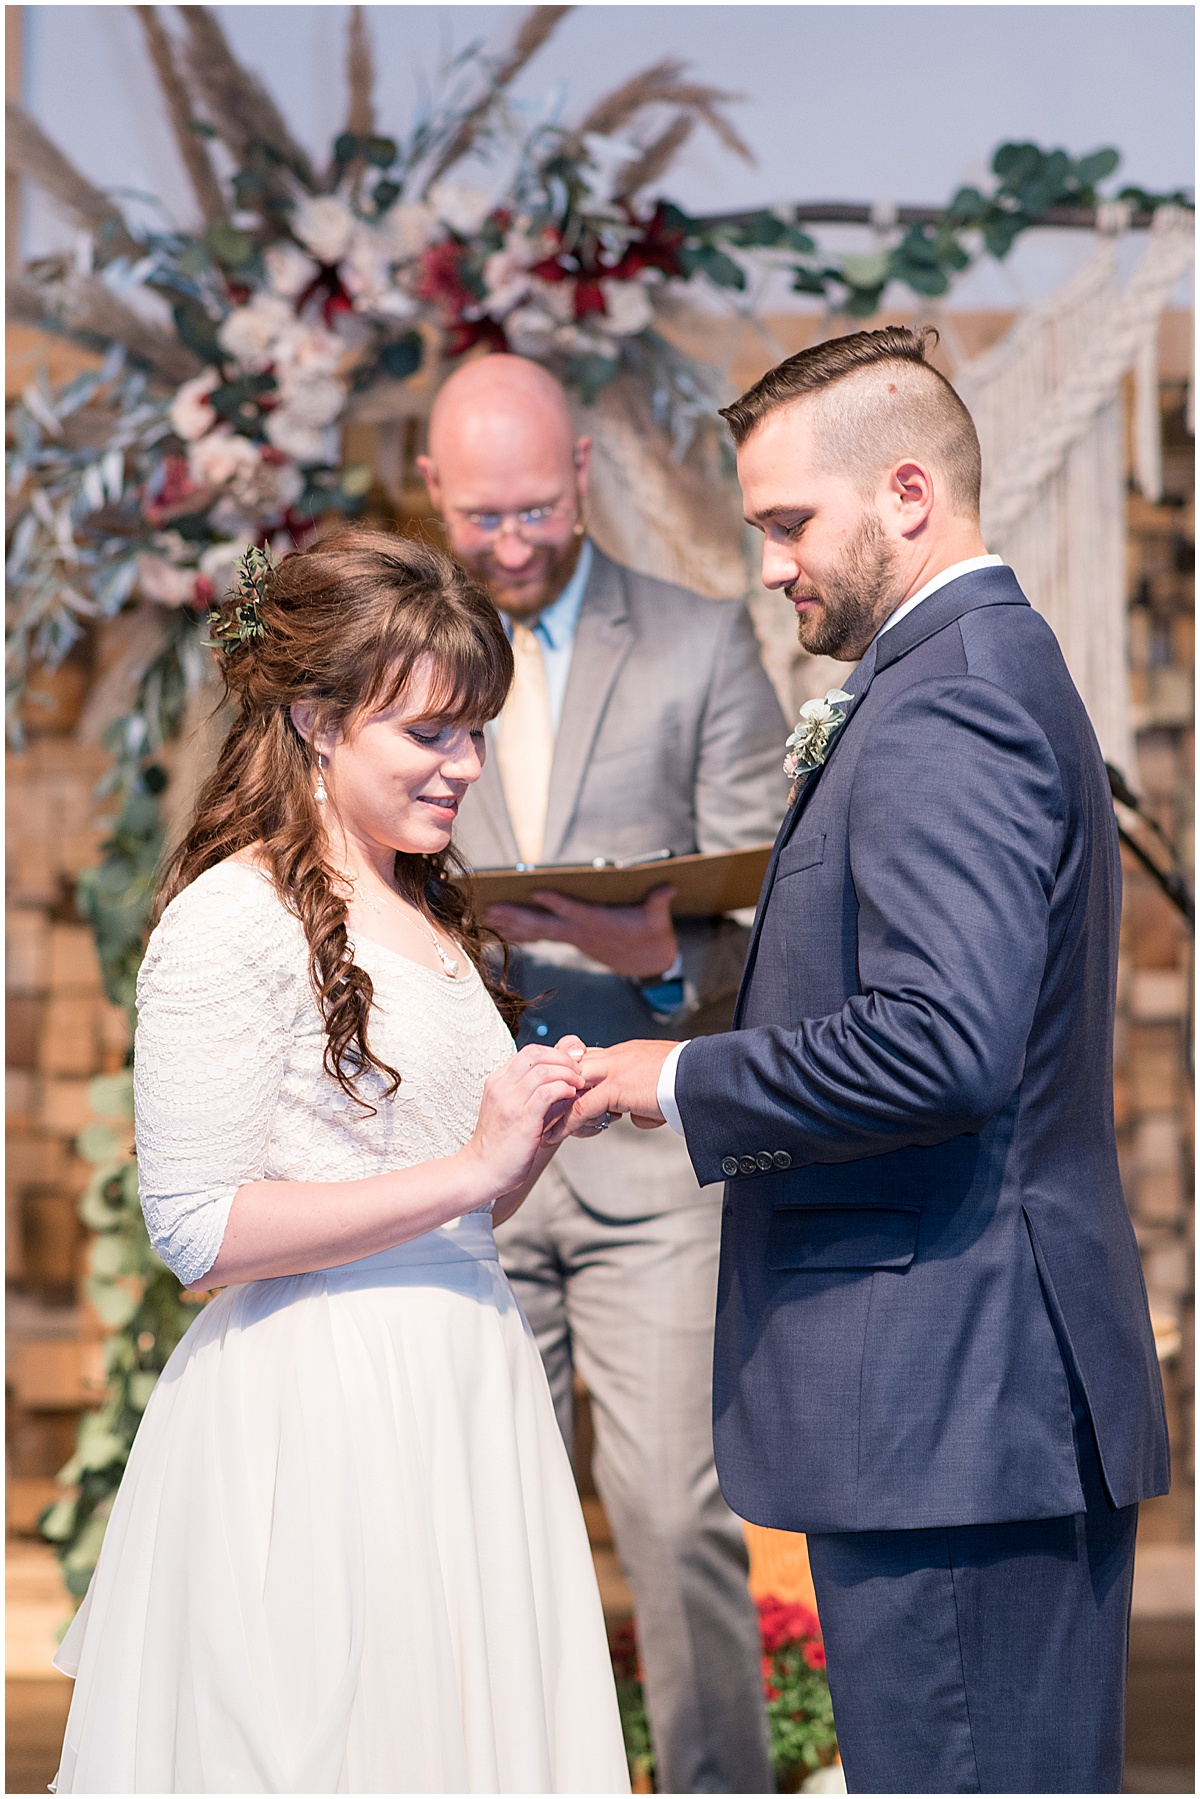 Bride puts ring on grooms finger during wedding at Innovation Church in Lafayette, Indiana